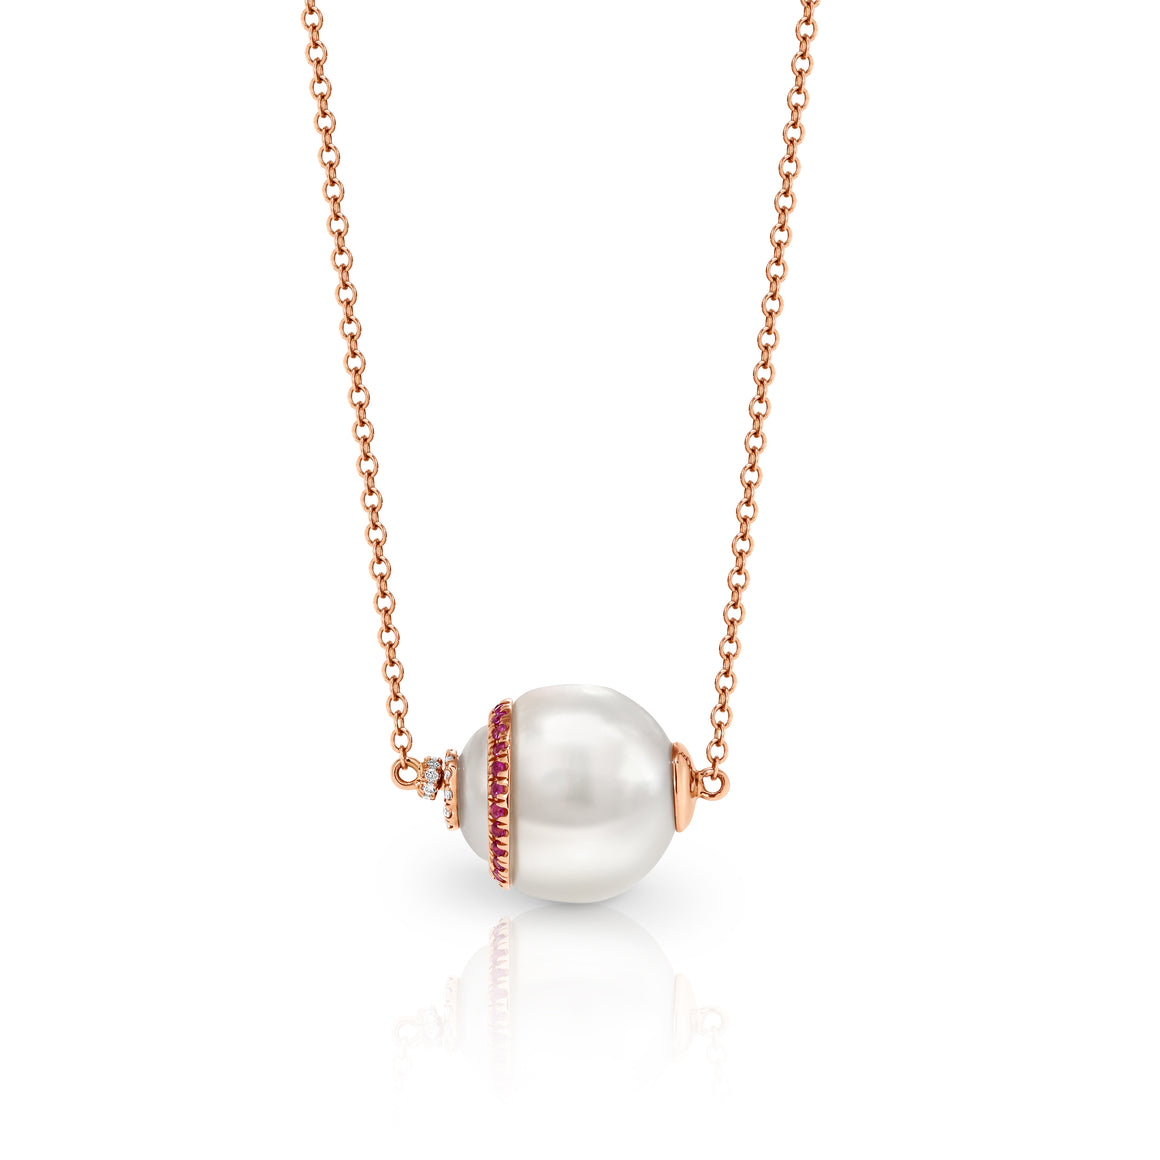 UNIPearl South Sea Pearl with Diamond and Ruby Necklace - Gemma Stone  ABN:51 621 127 866